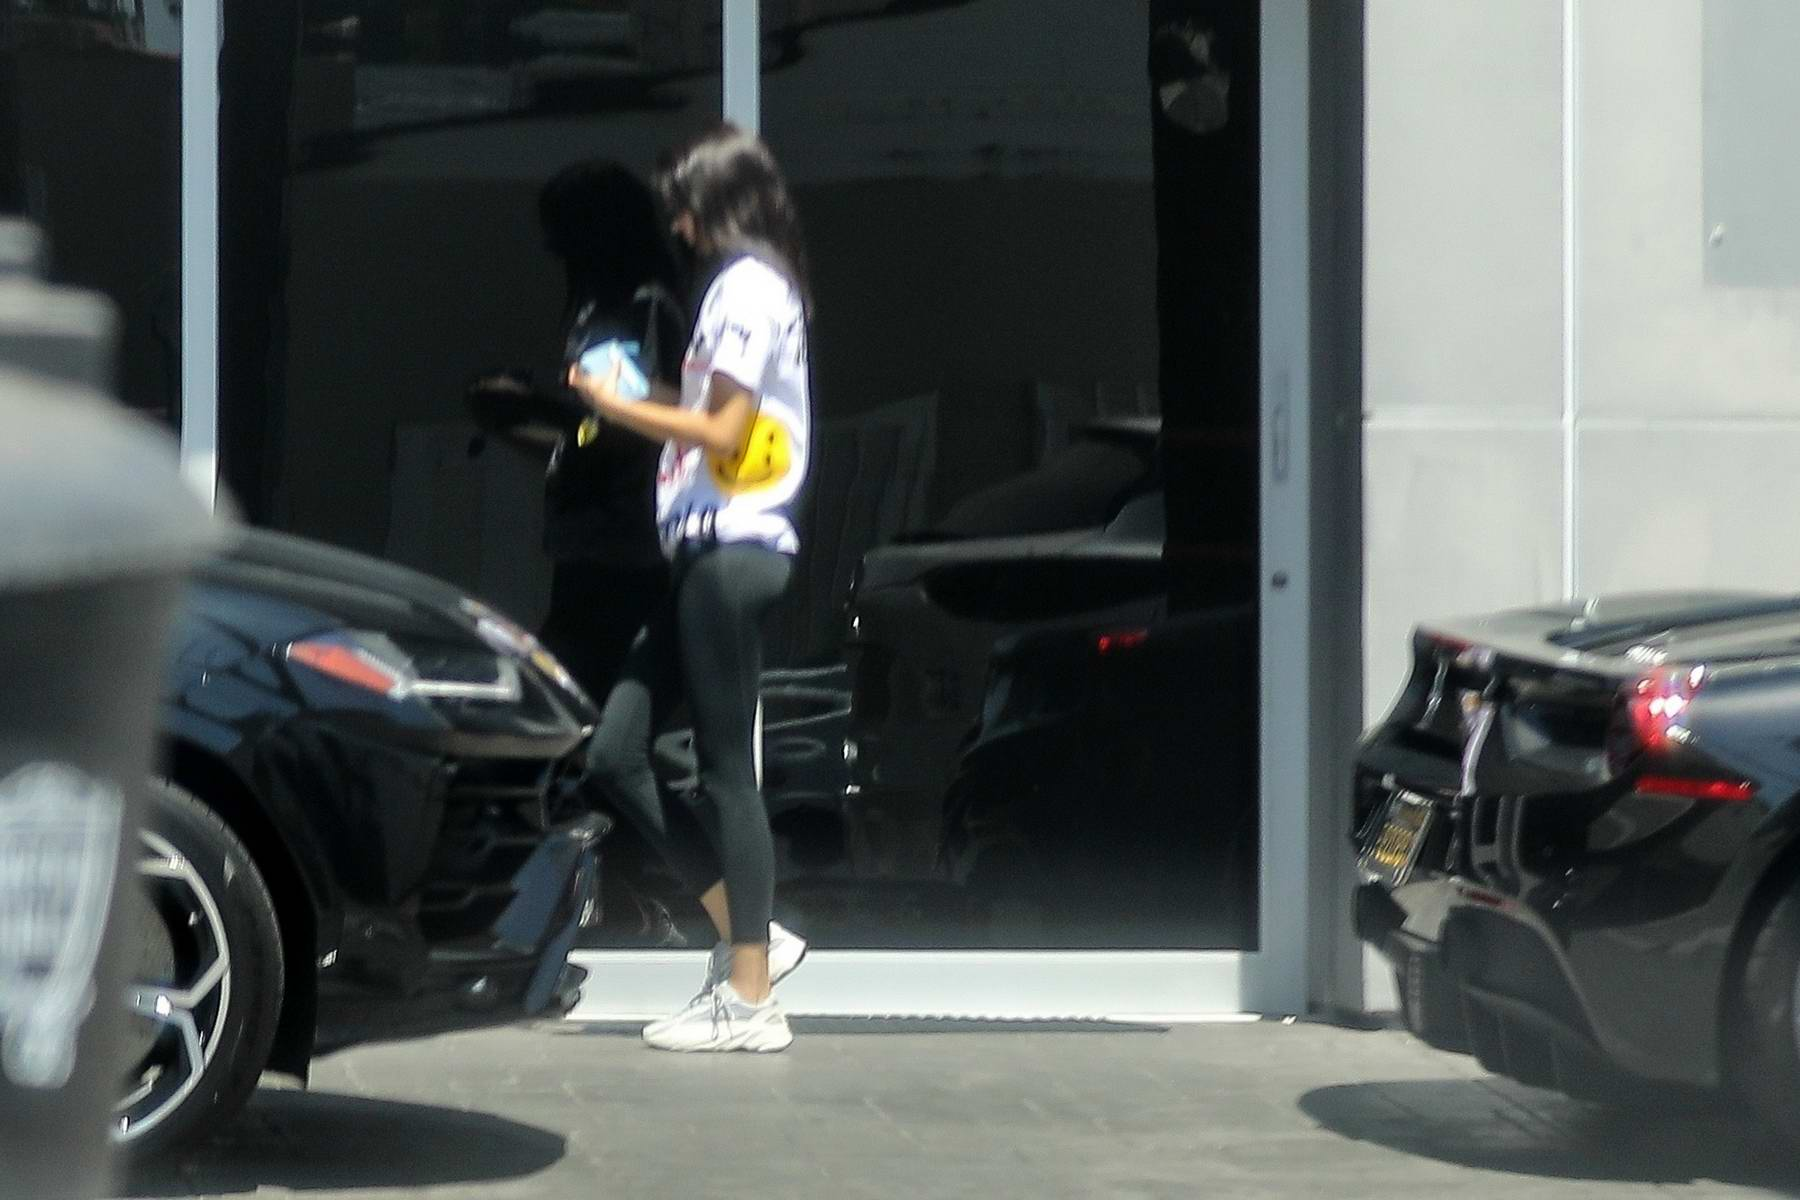 Kendall Jenner Keeps It Casual While She Brings Her Ferrari In For A Service At The Ferrari Dealer In Beverly Hills Los Angeles 030919 8